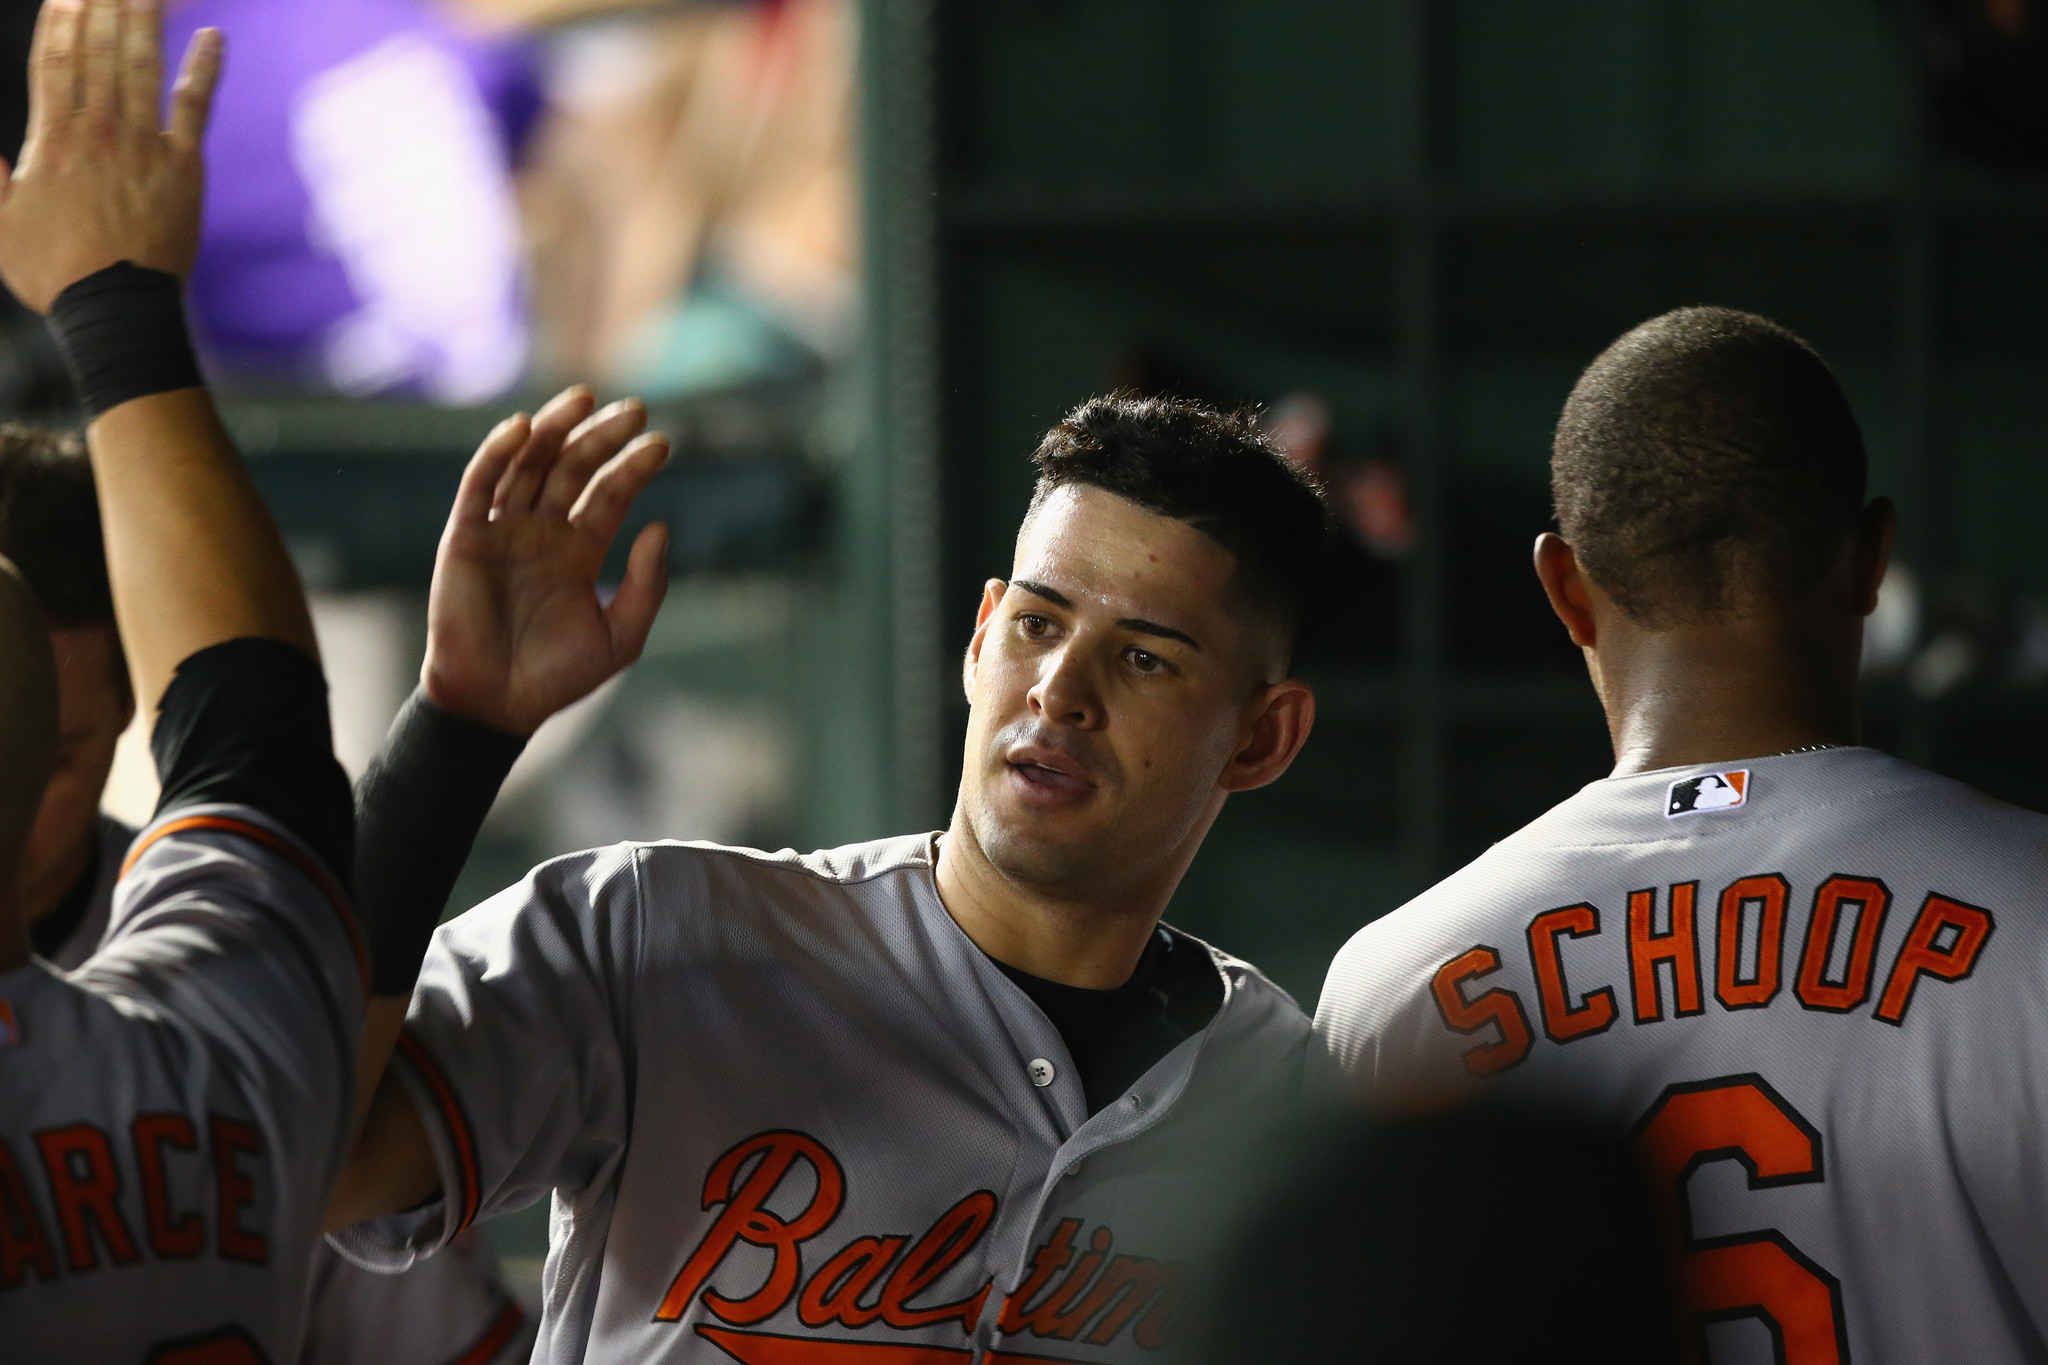 Bal-can-orioles-dariel-alvarez-springboard-caribbean-series-success-into-a-strong-spring-training-20160208